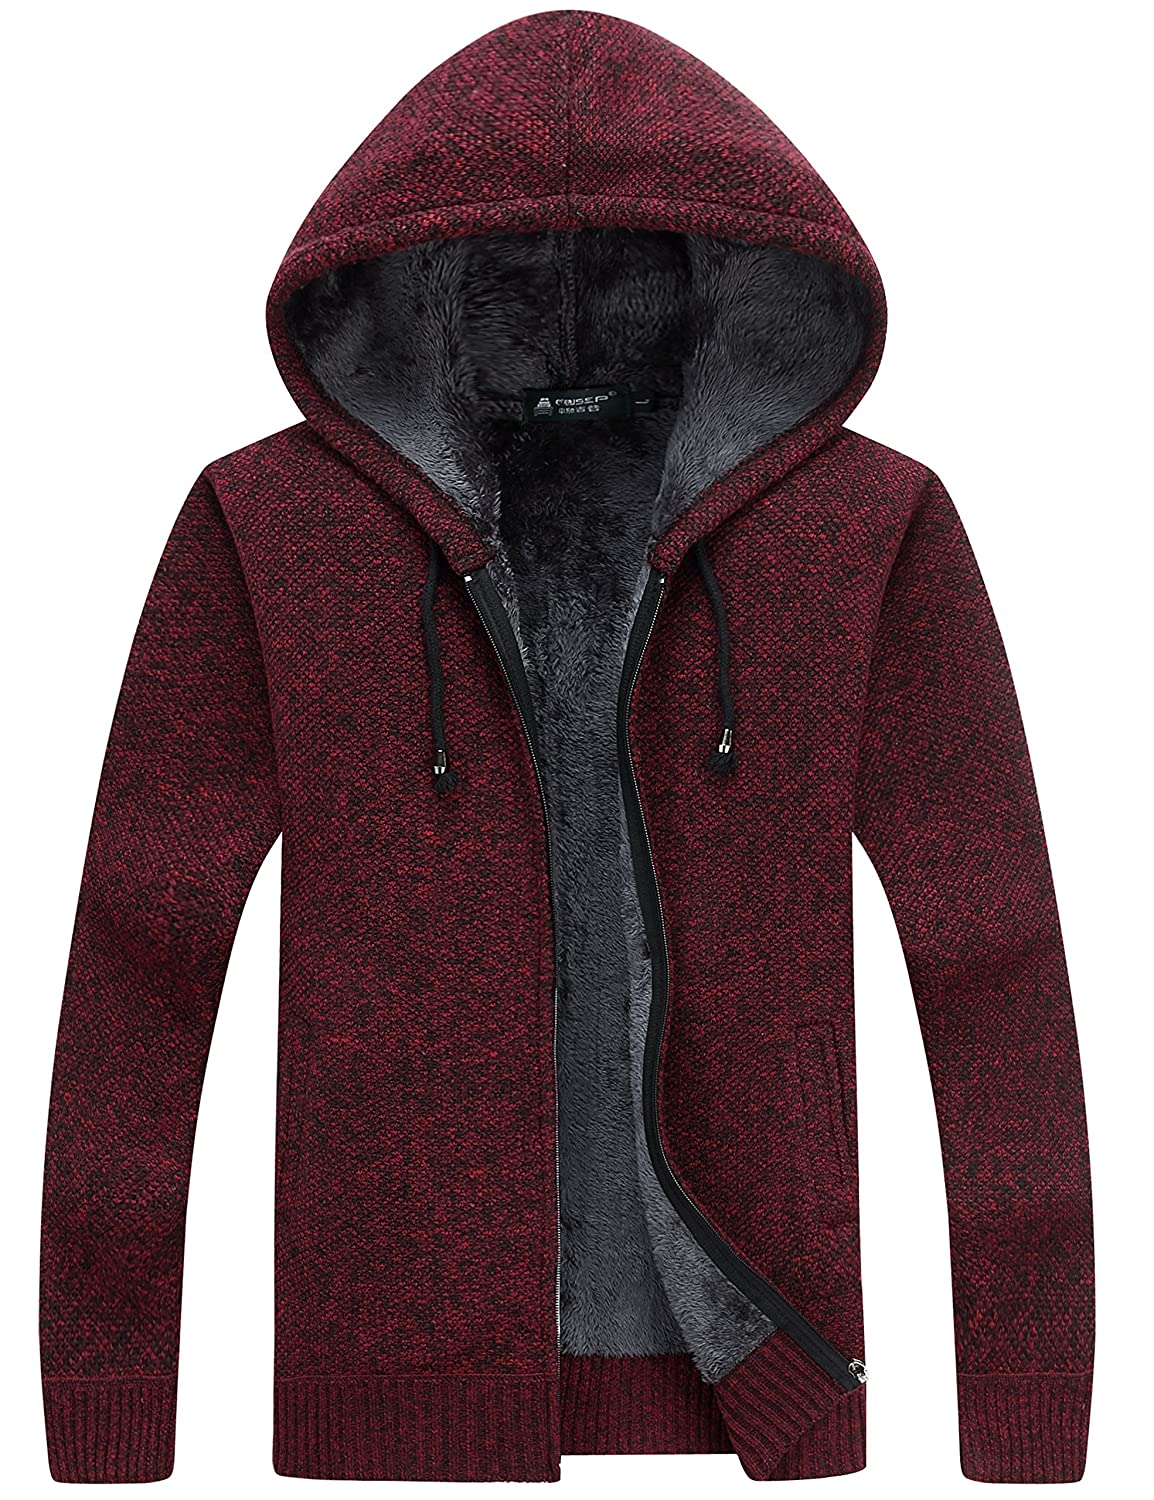 Yeokou Men's Thick Sherpa Lined Full Zip Hooded Cardigan Sweaters with Pockets